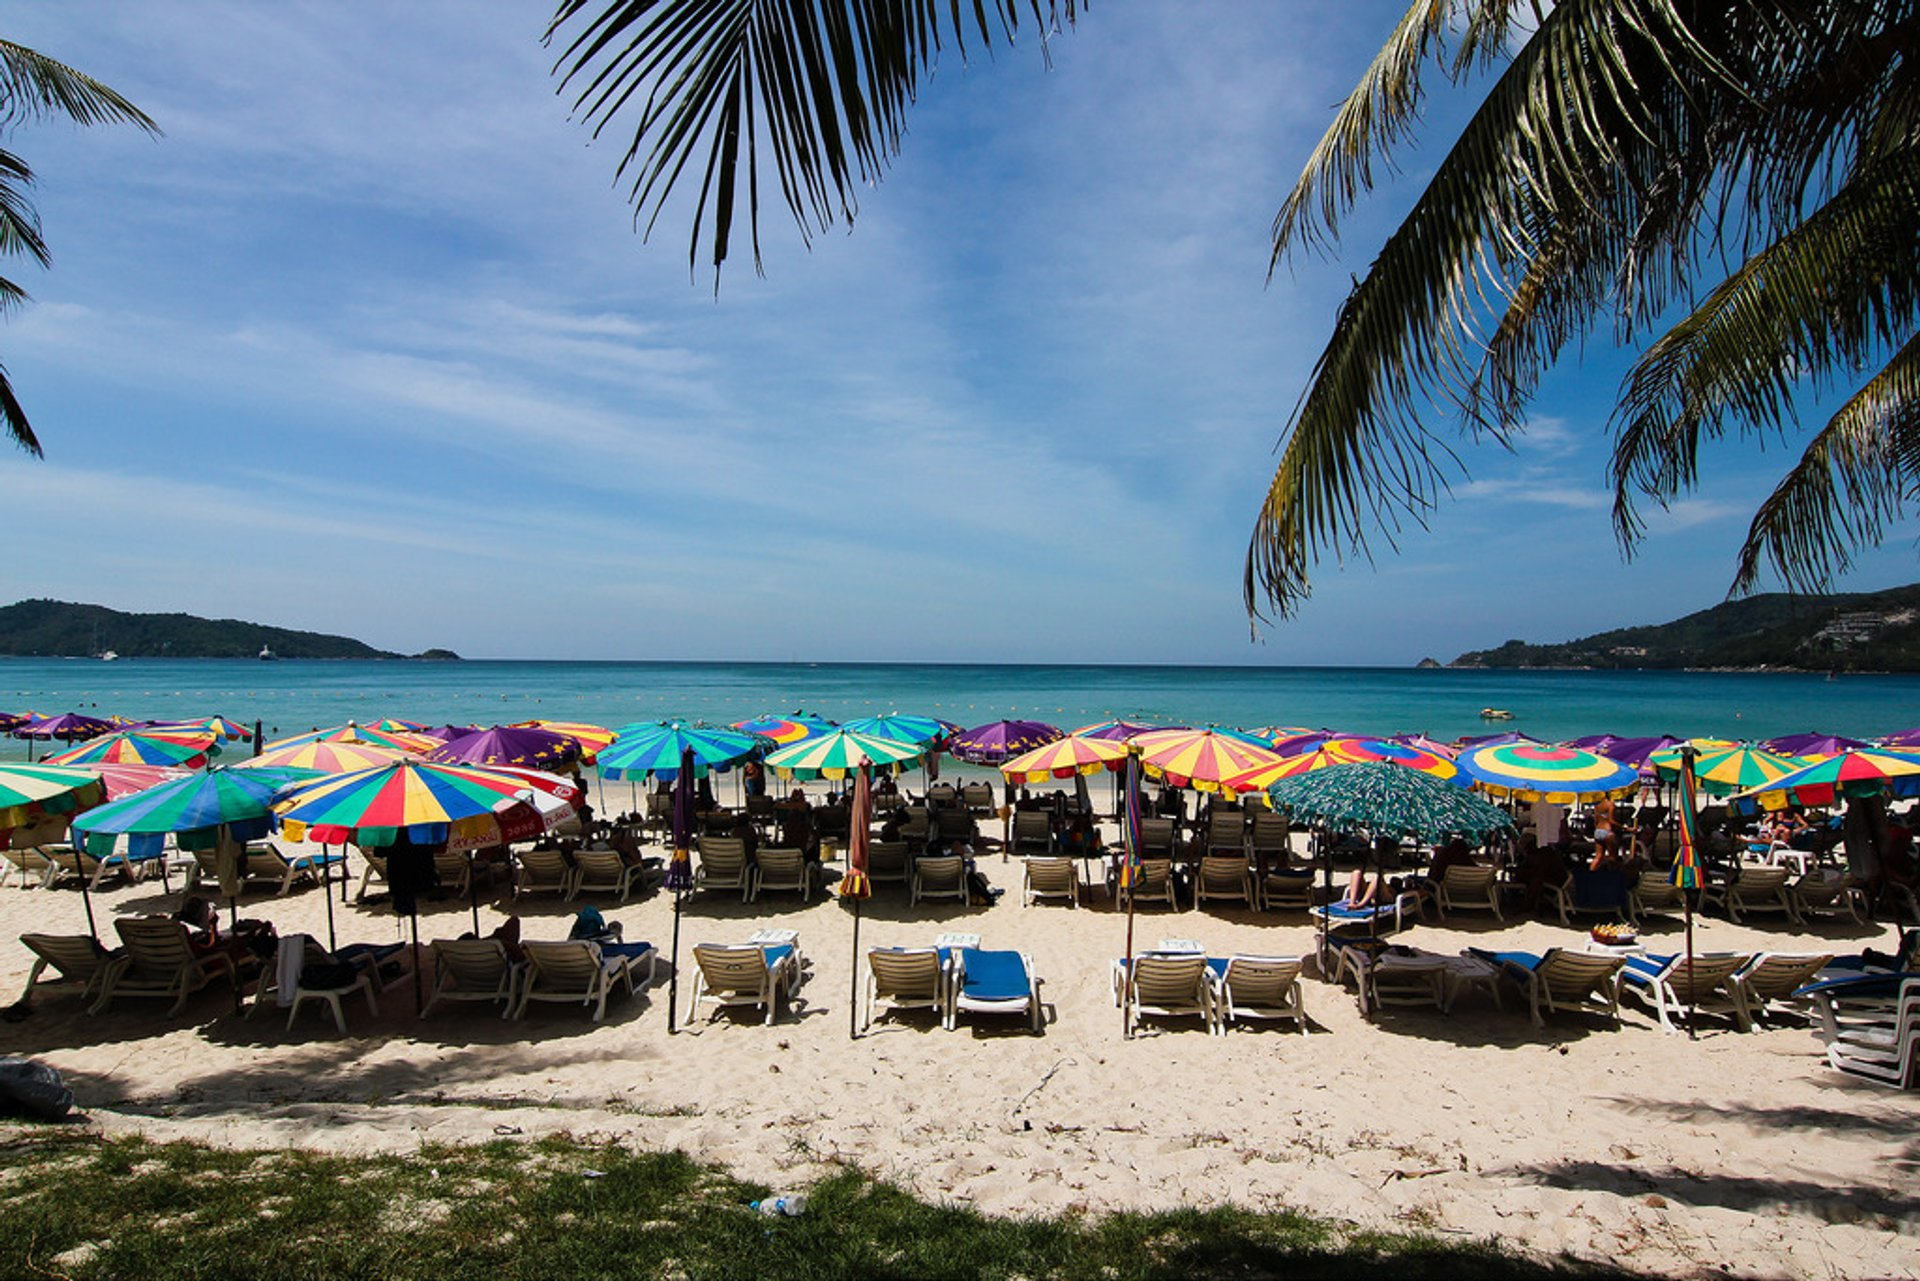 Beach Season in Phuket 2020 - Best Time